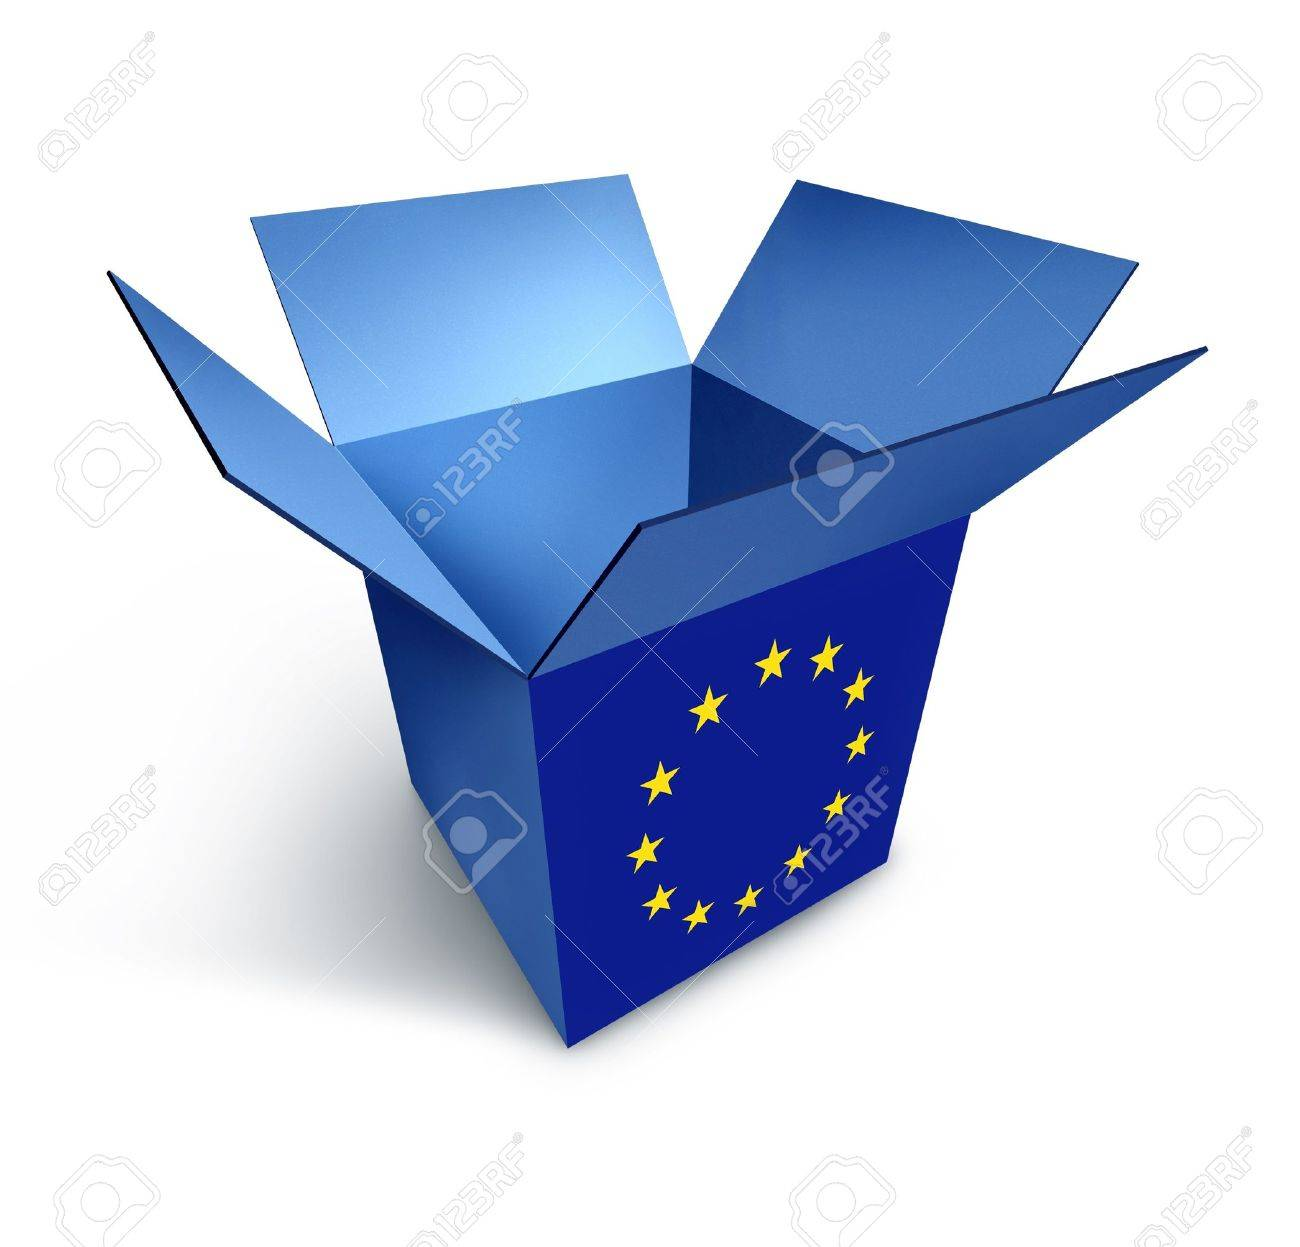 European Economy Symbol Represented By A Blue Box With The Flag